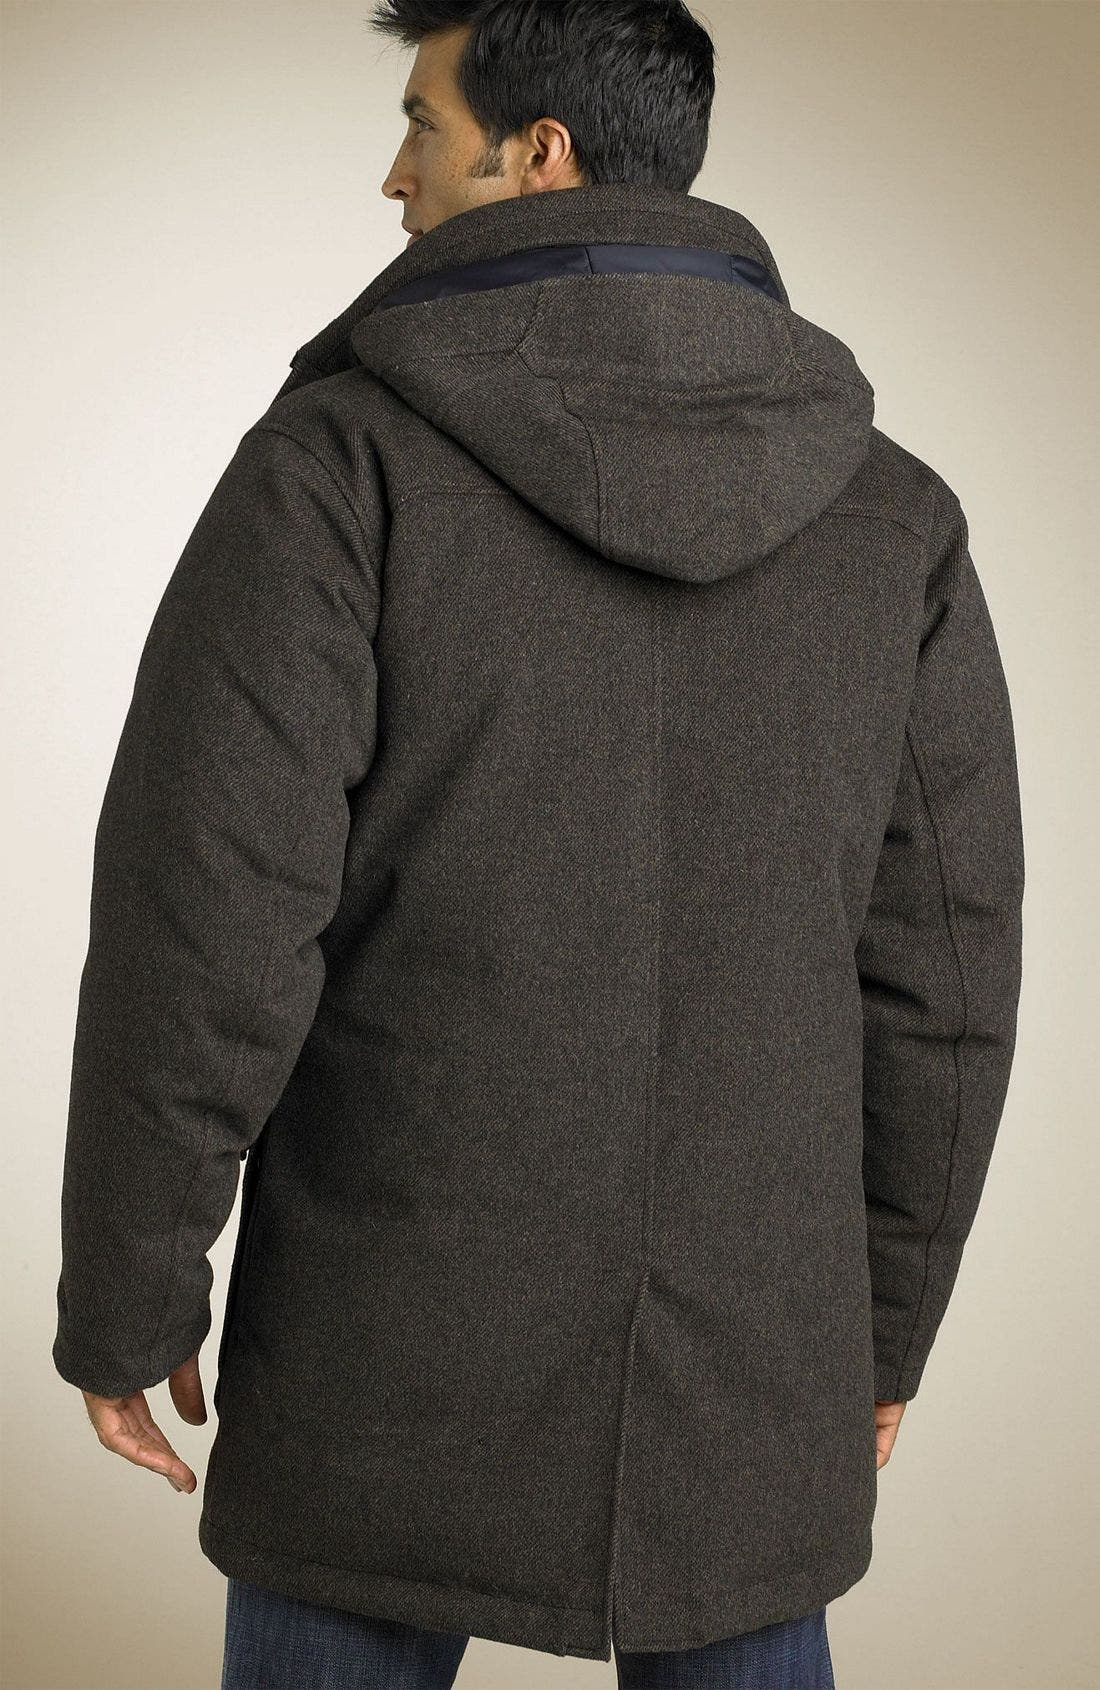 Alternate Image 2  - The North Face 485 Collection 'Tellurium' Tweed Jacket